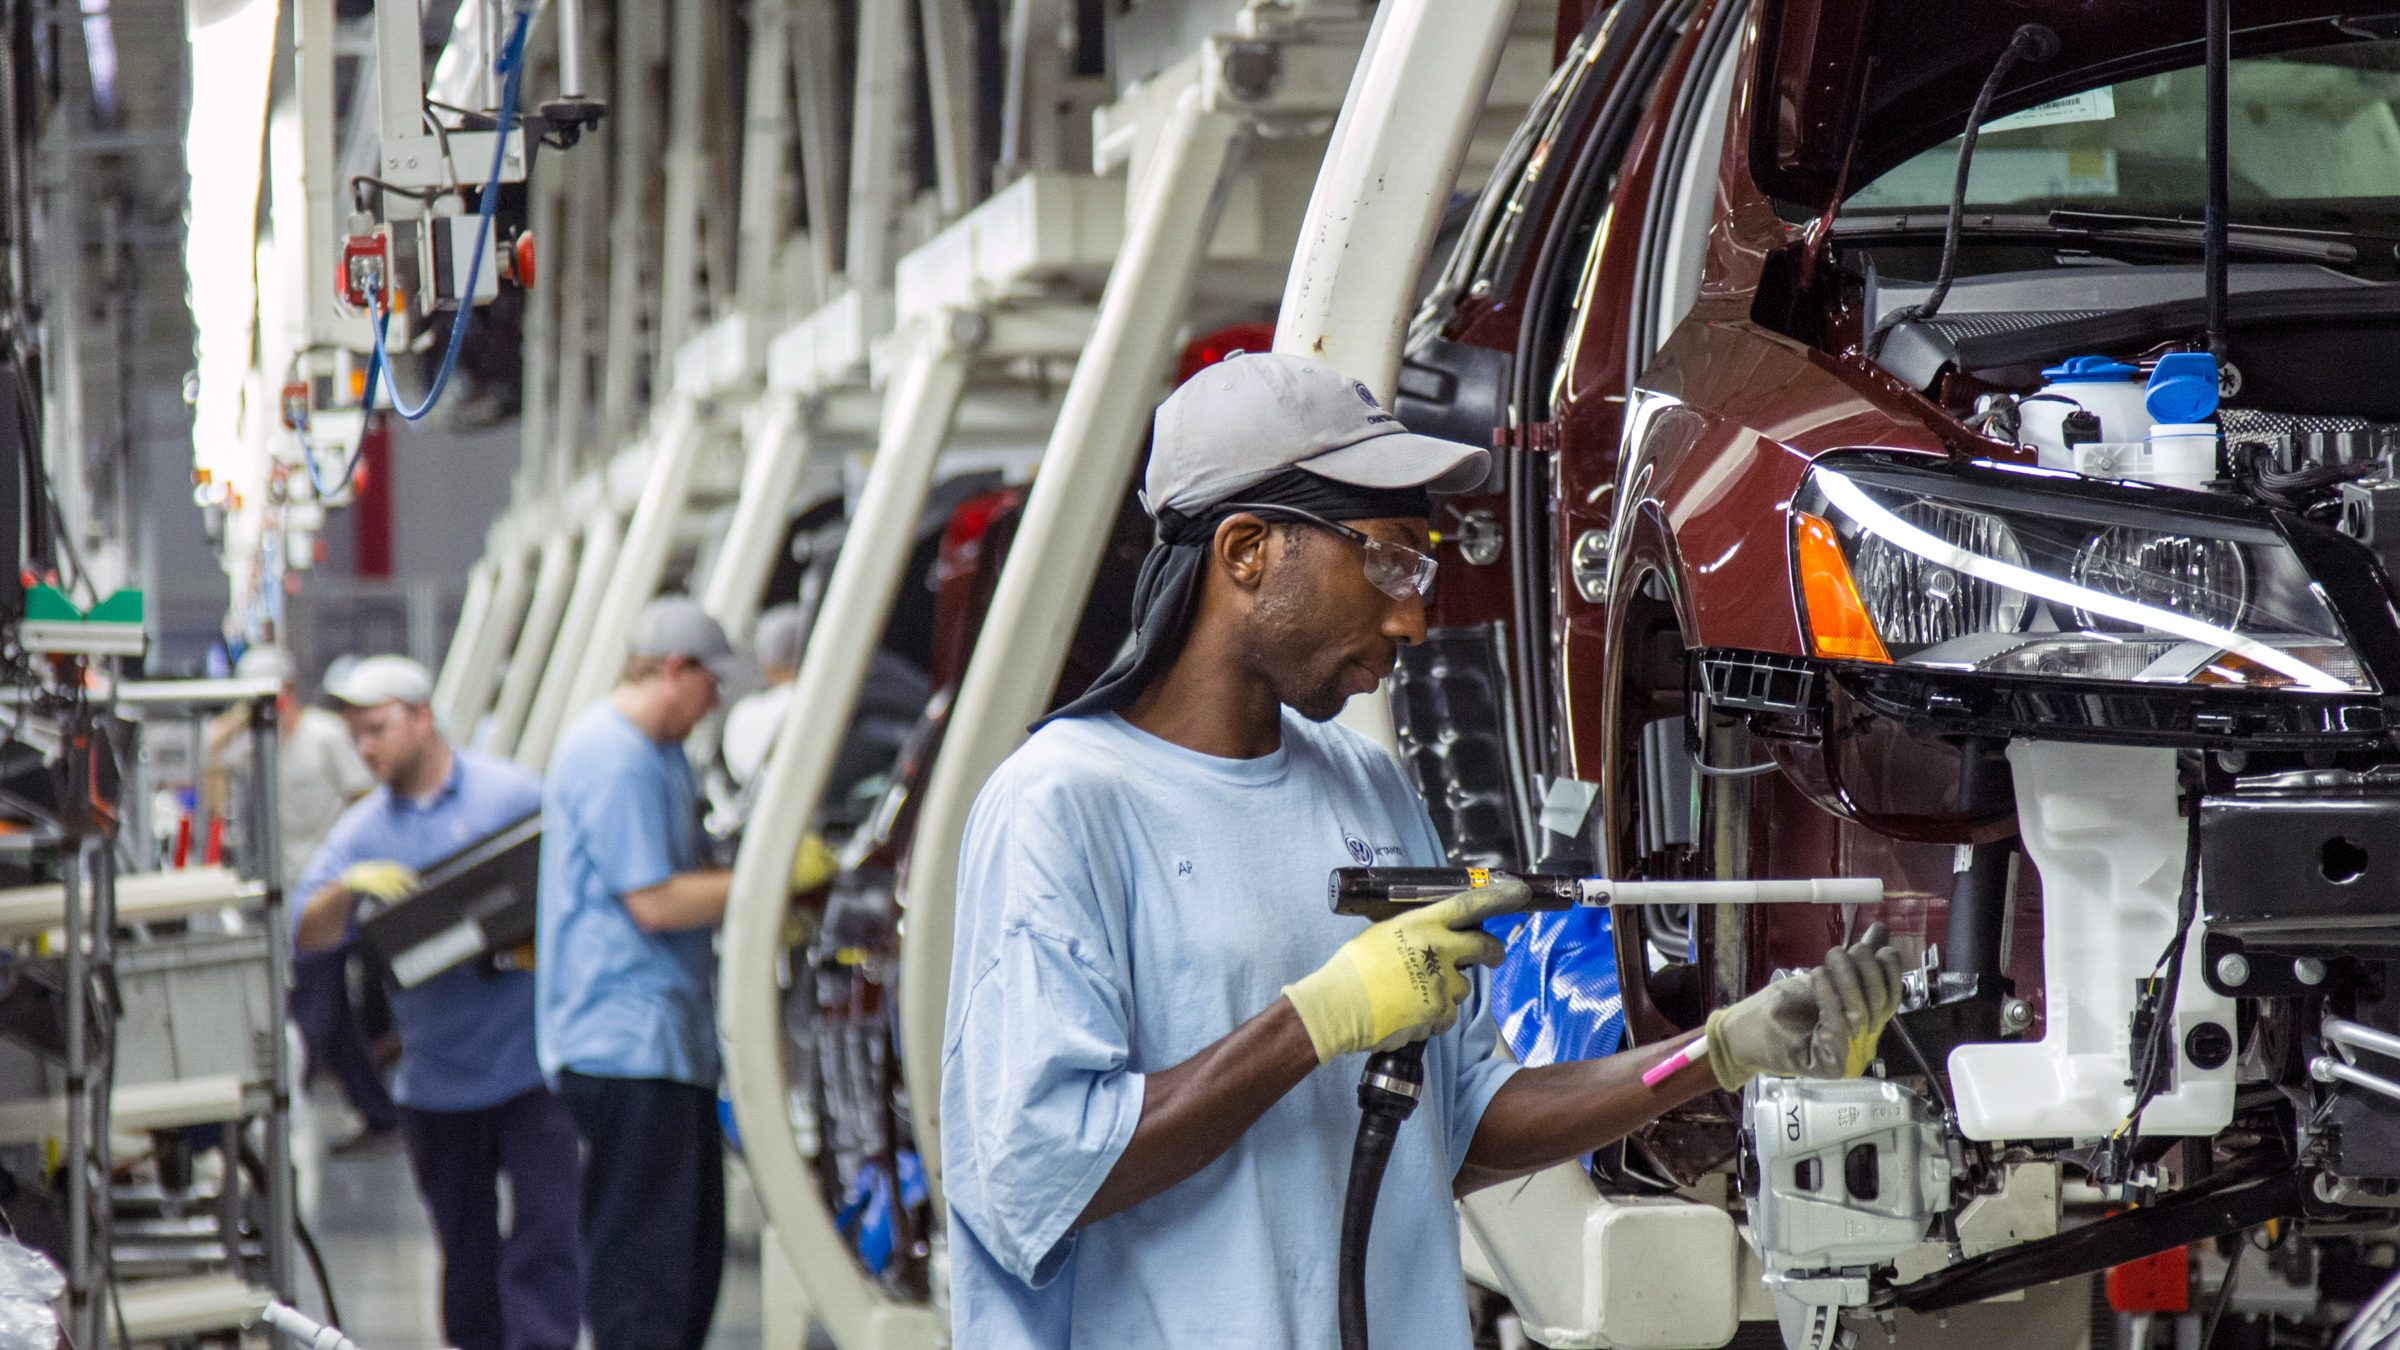 workers at assembly line at the Volkswagen plant in Chattanooga, Tenn.